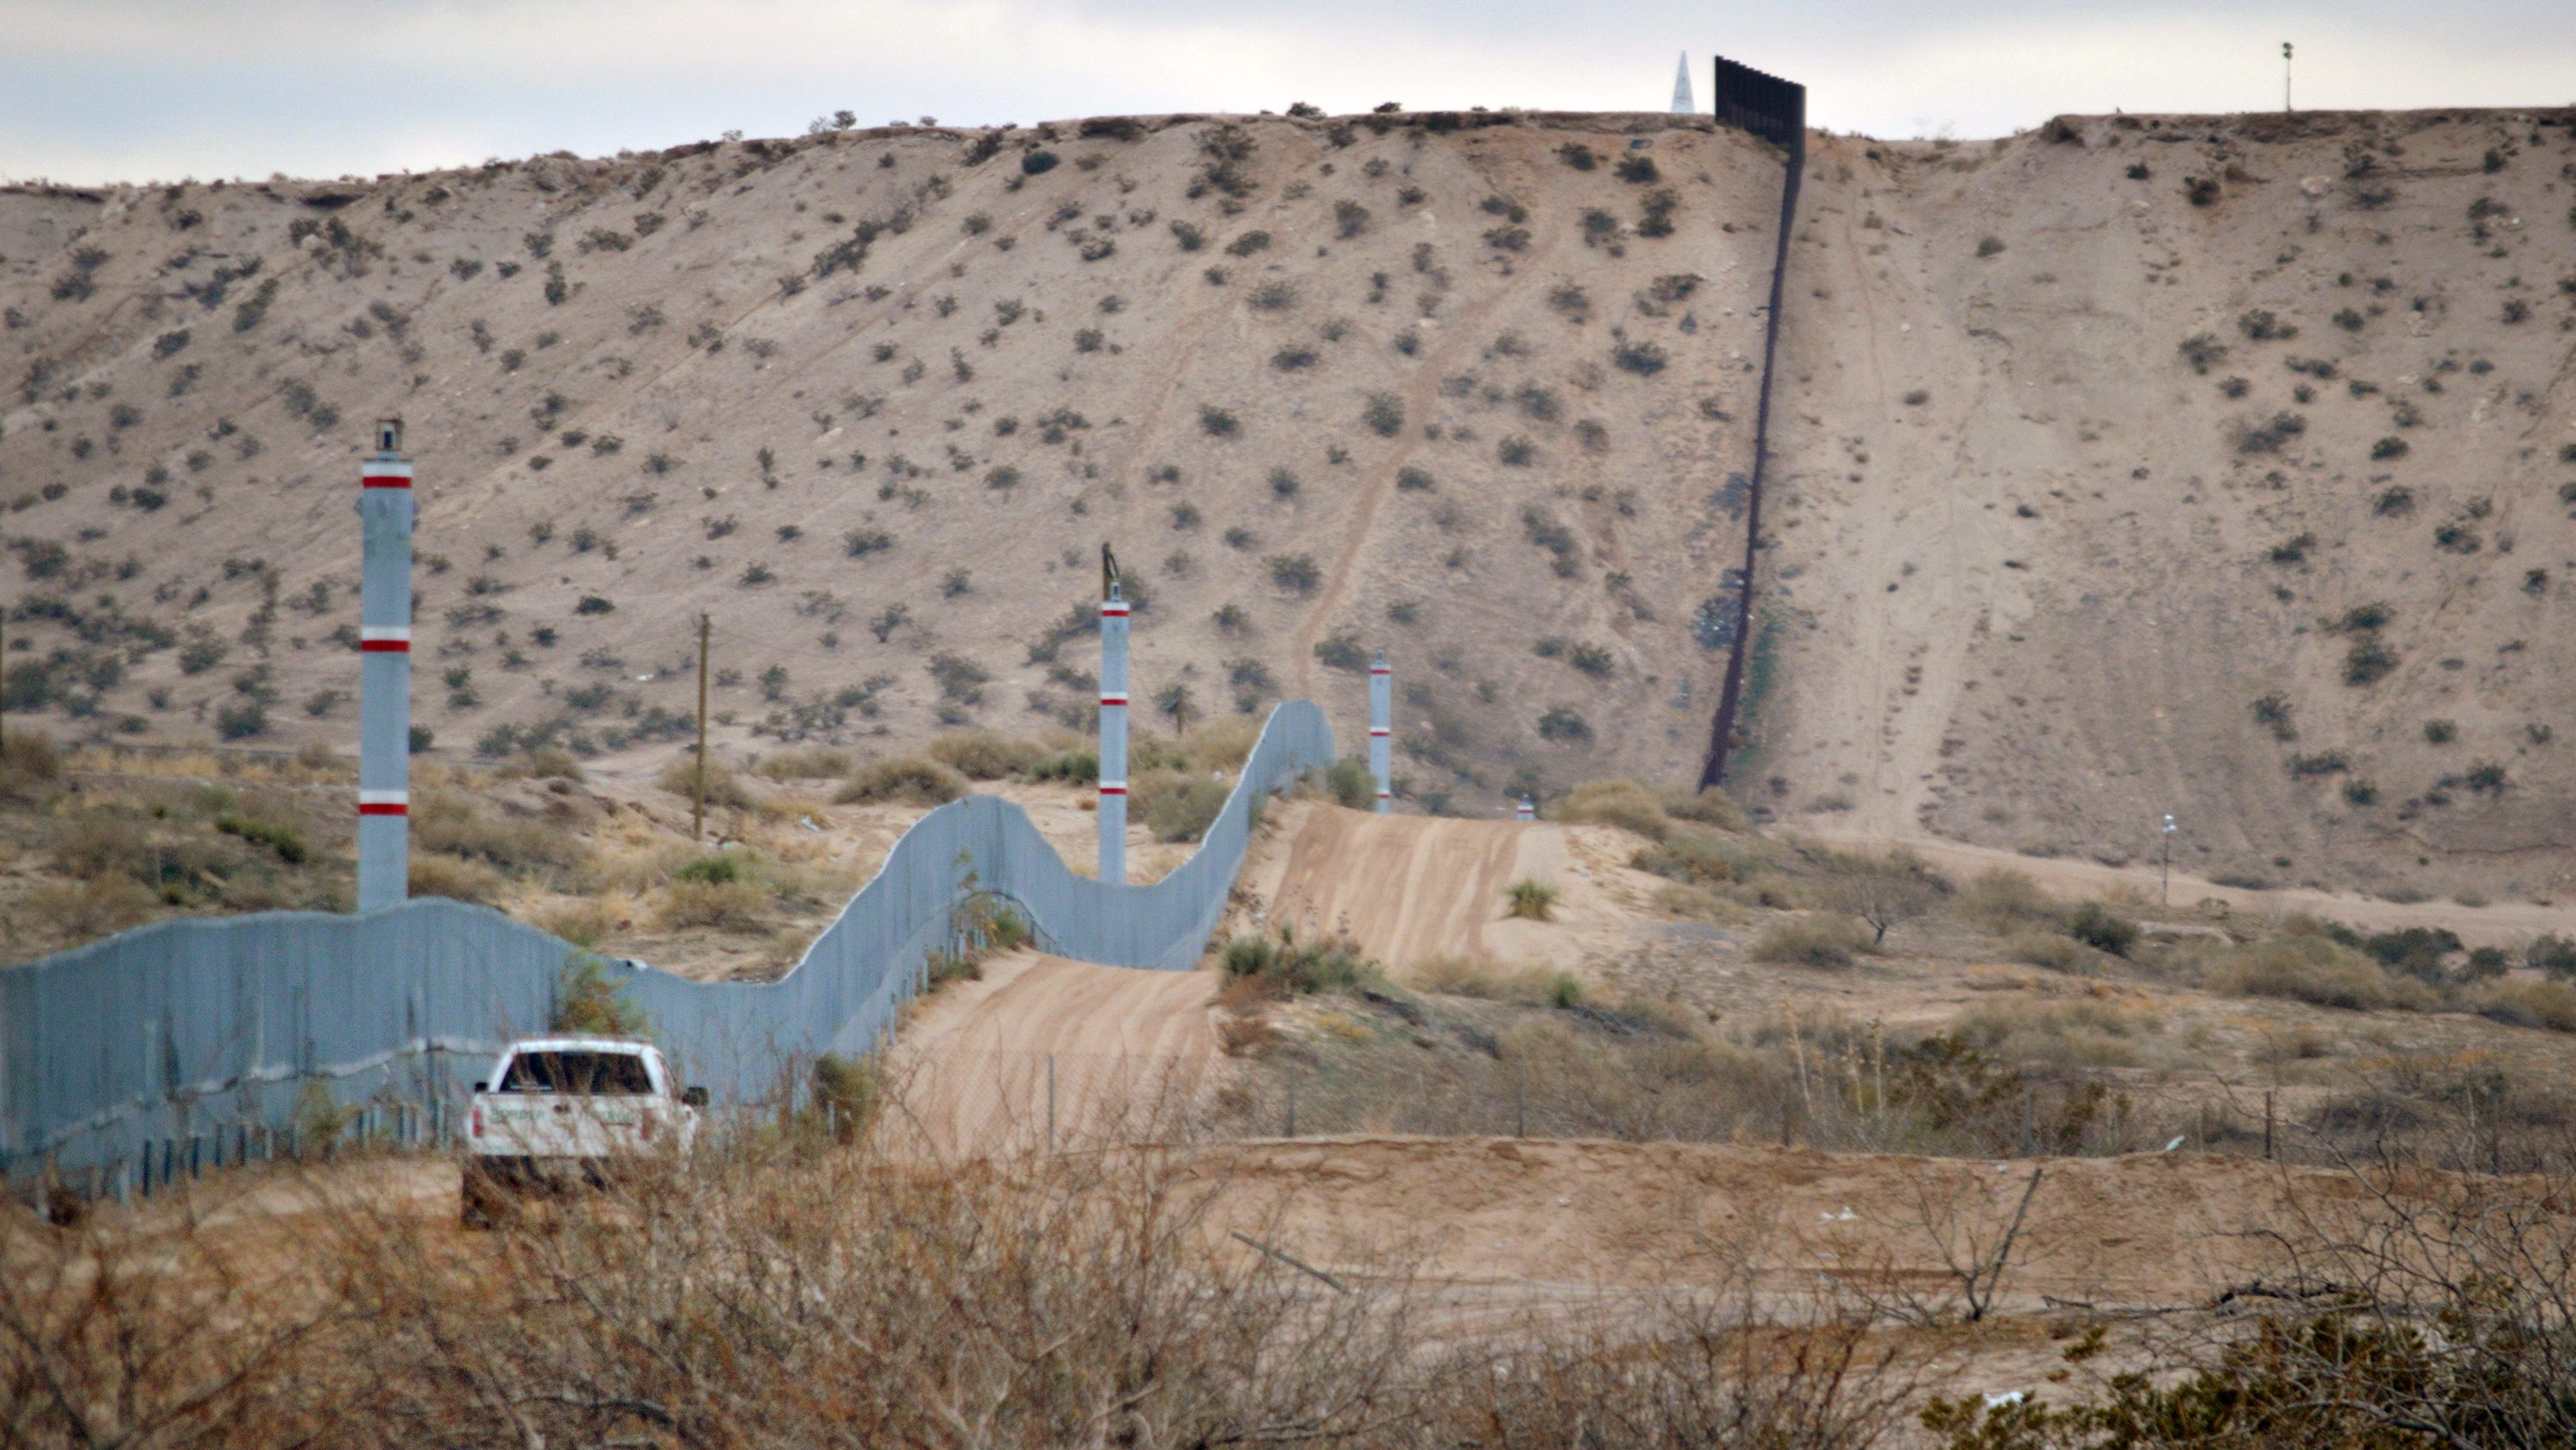 This is how much it costs to cross the US-Mexico border